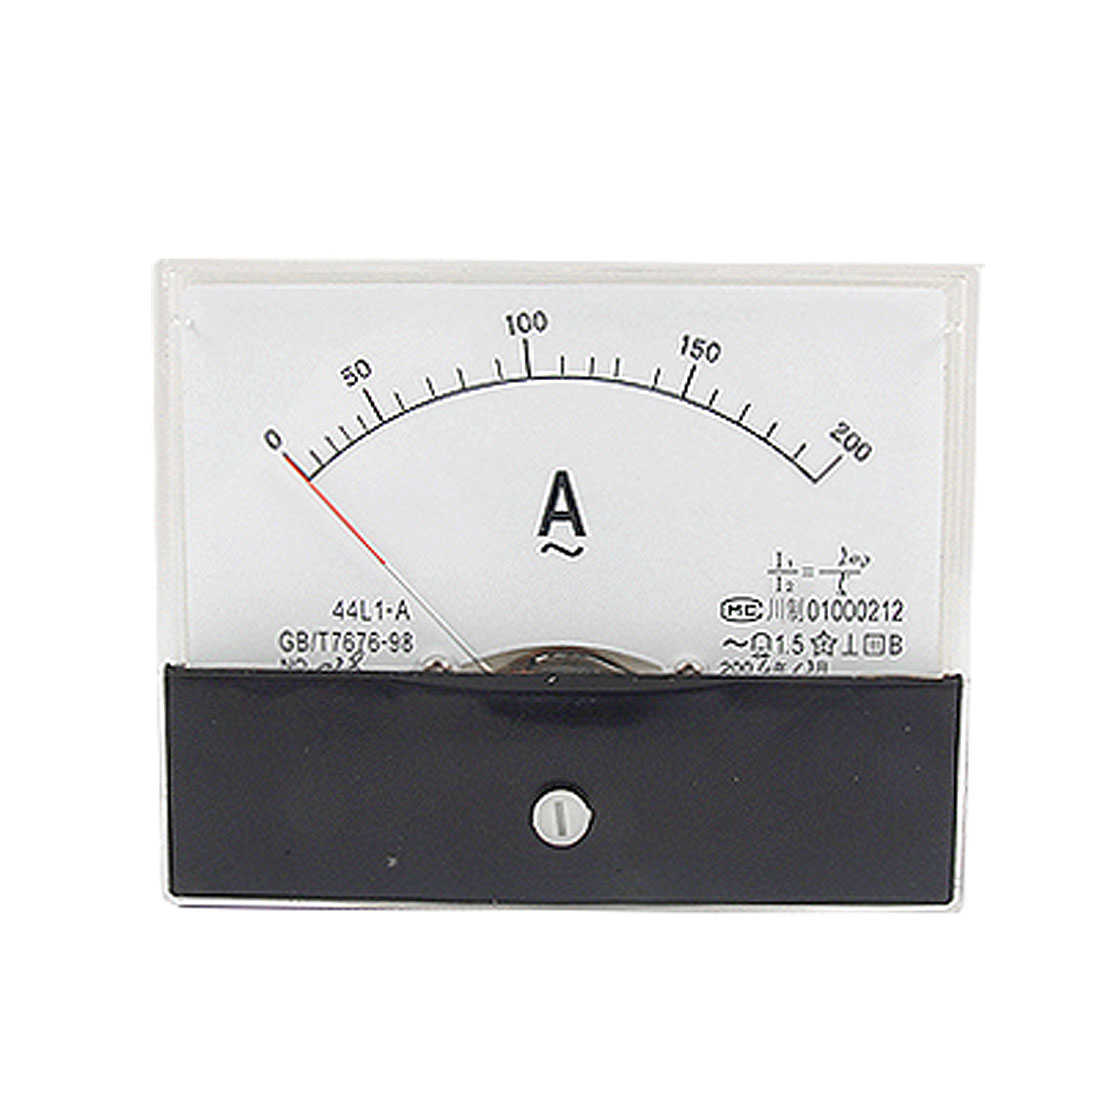 44L1-A Panel Mount 0-200A Analog AC Ammeter Current Meter